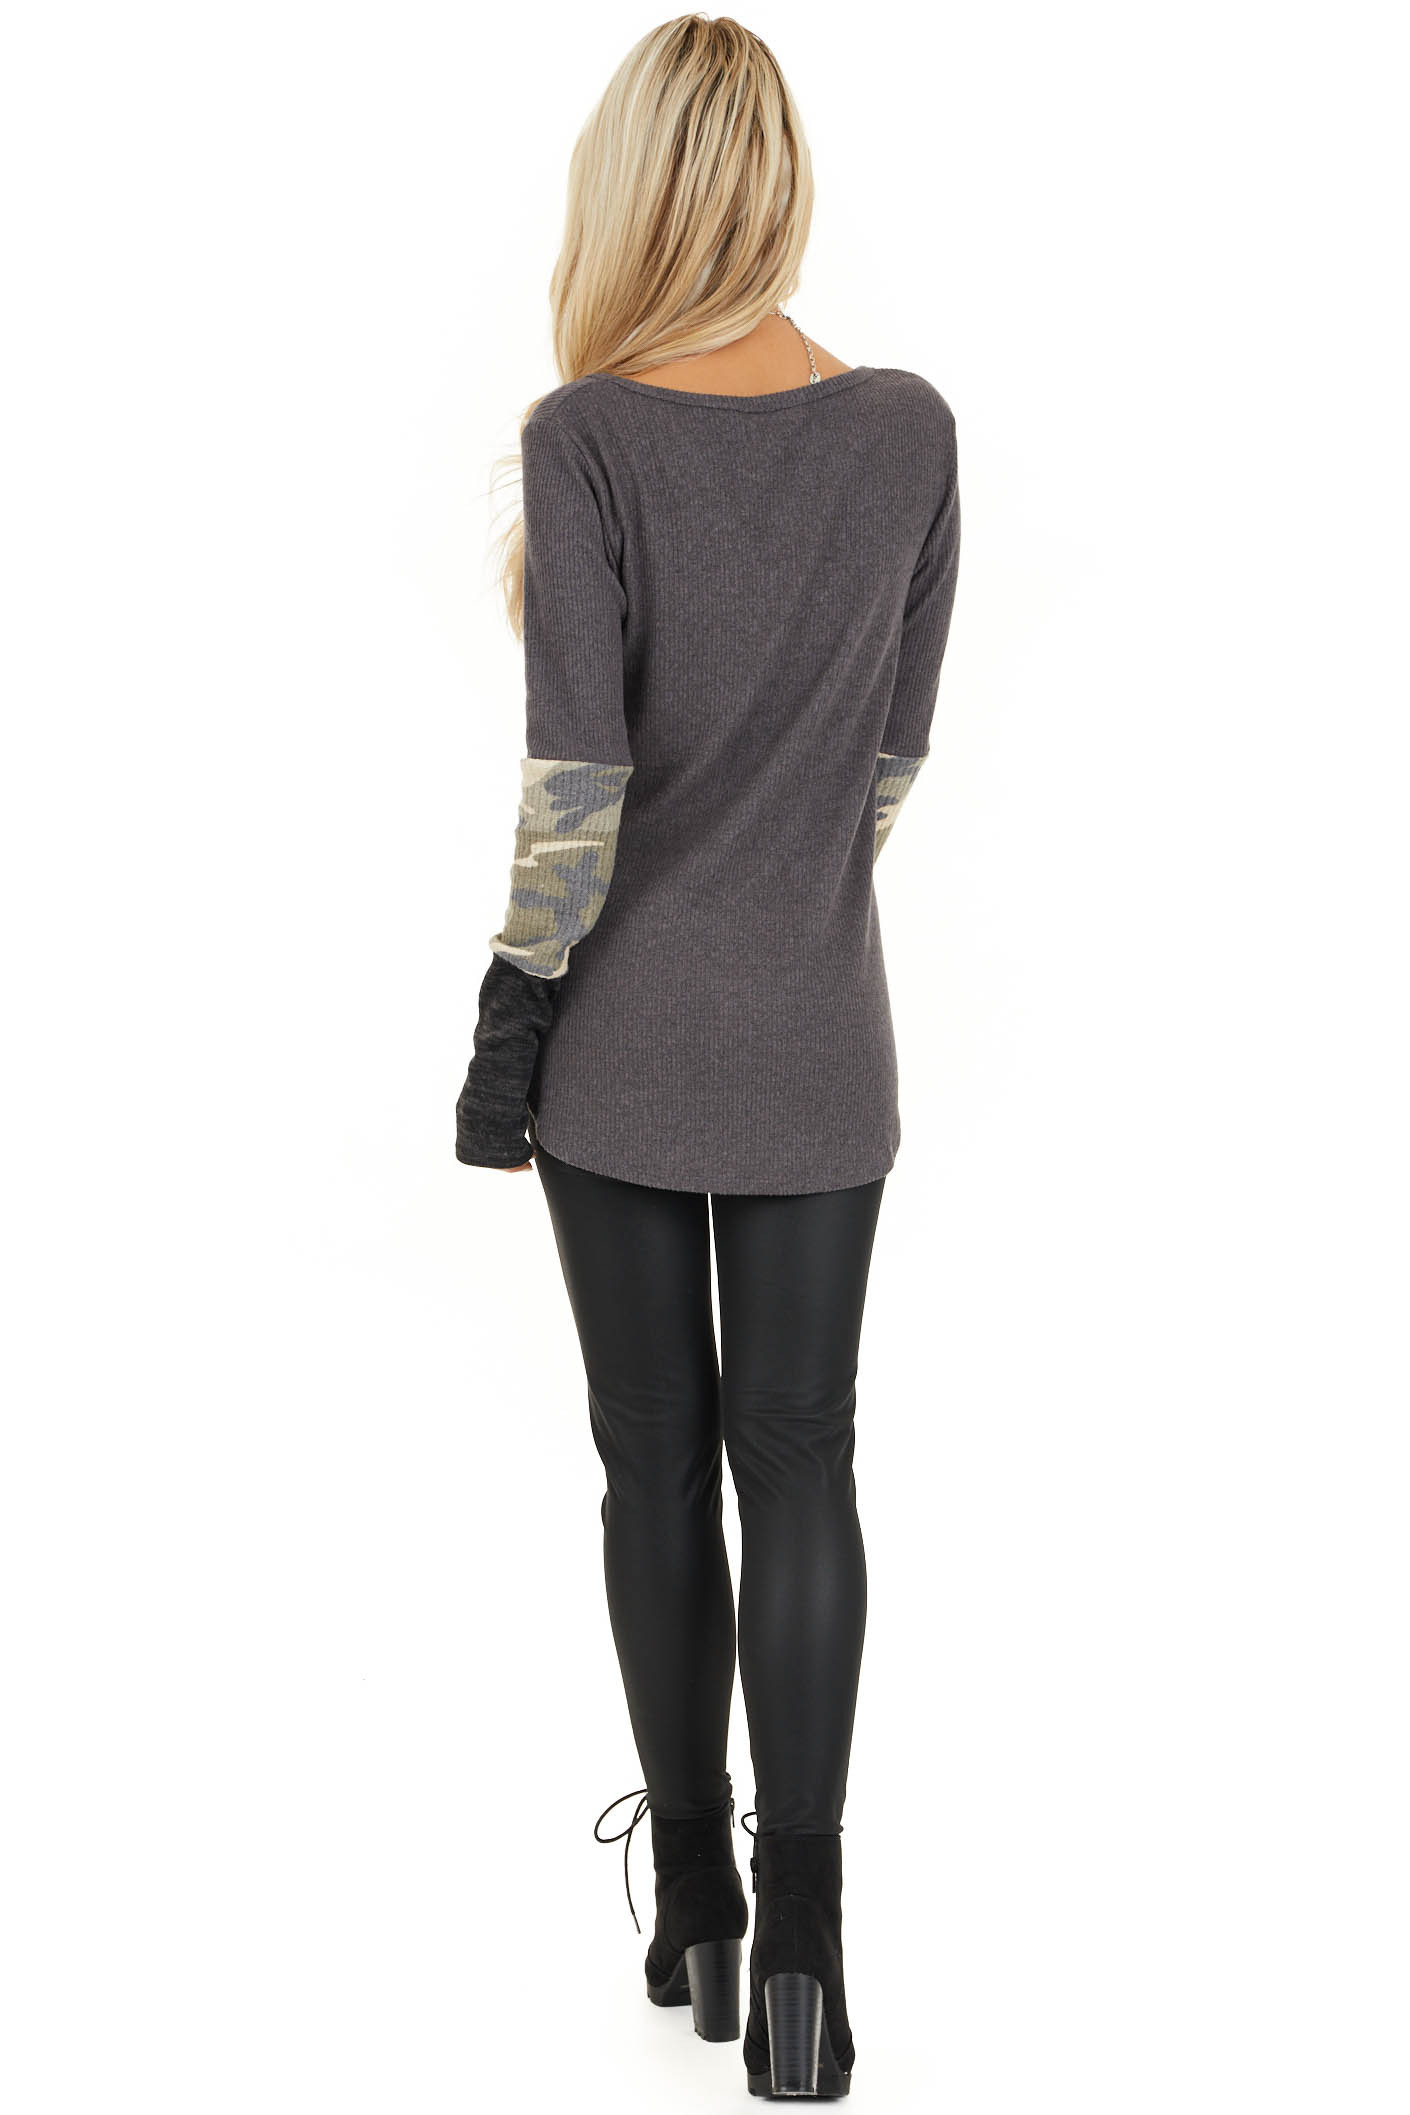 Charcoal Ribbed Long Sleeve Top with Camo Print Details back full body